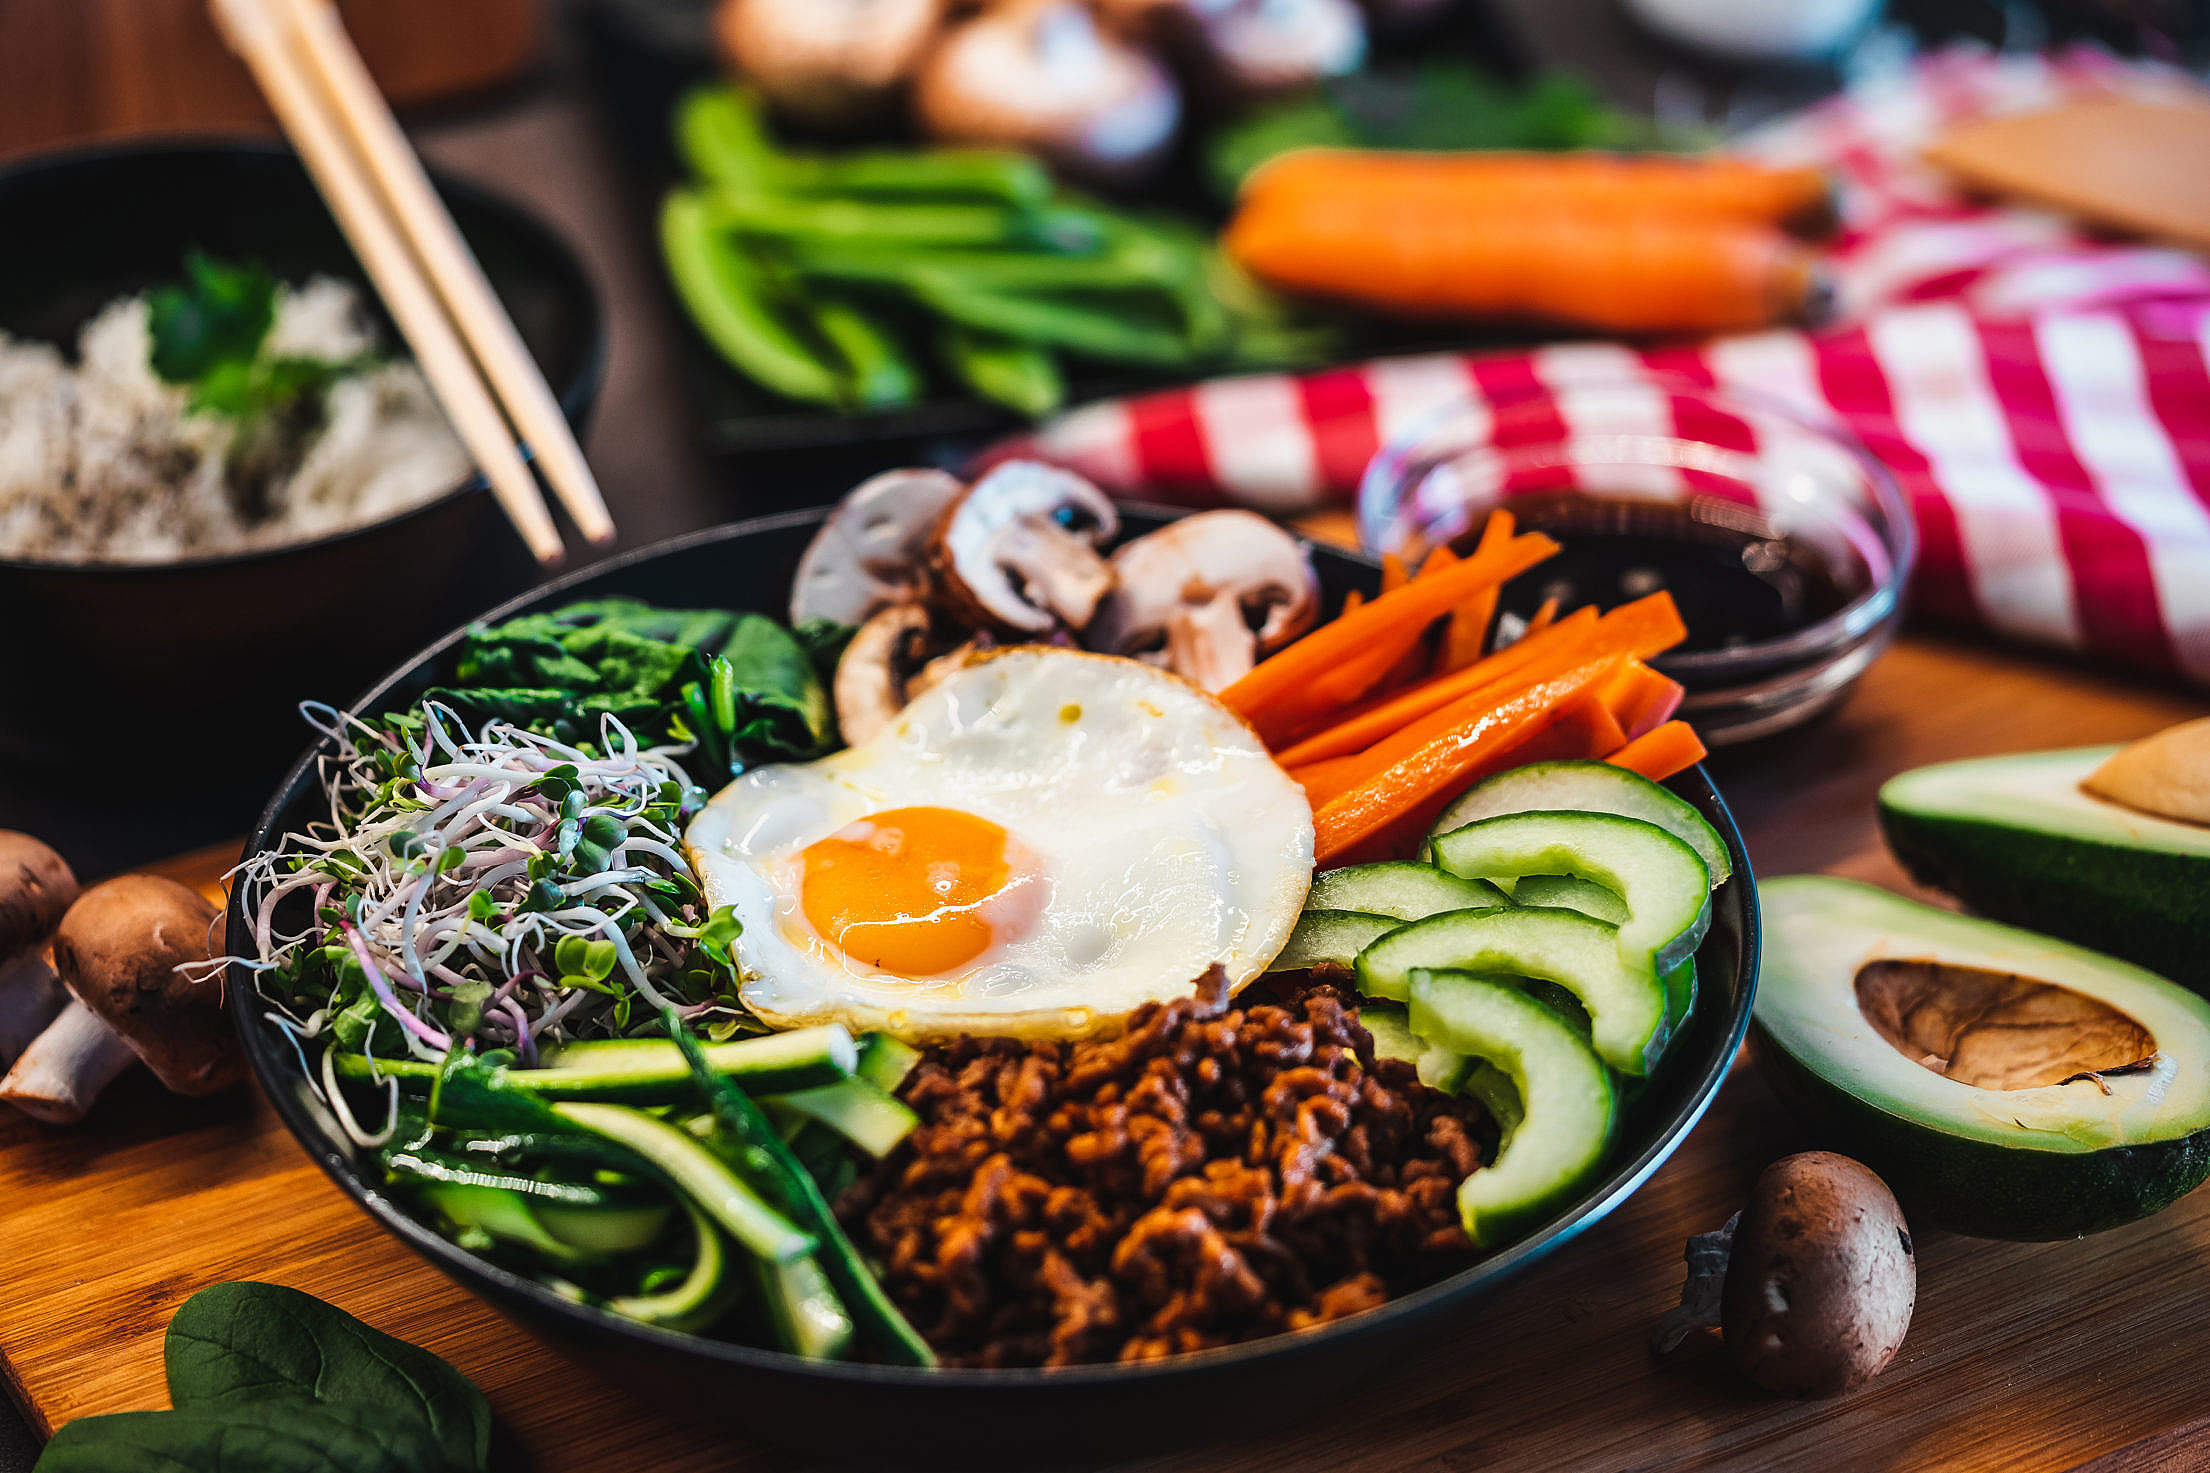 Korean Bibimbap Rice Dish Topped with a Fried Egg Free Stock Photo